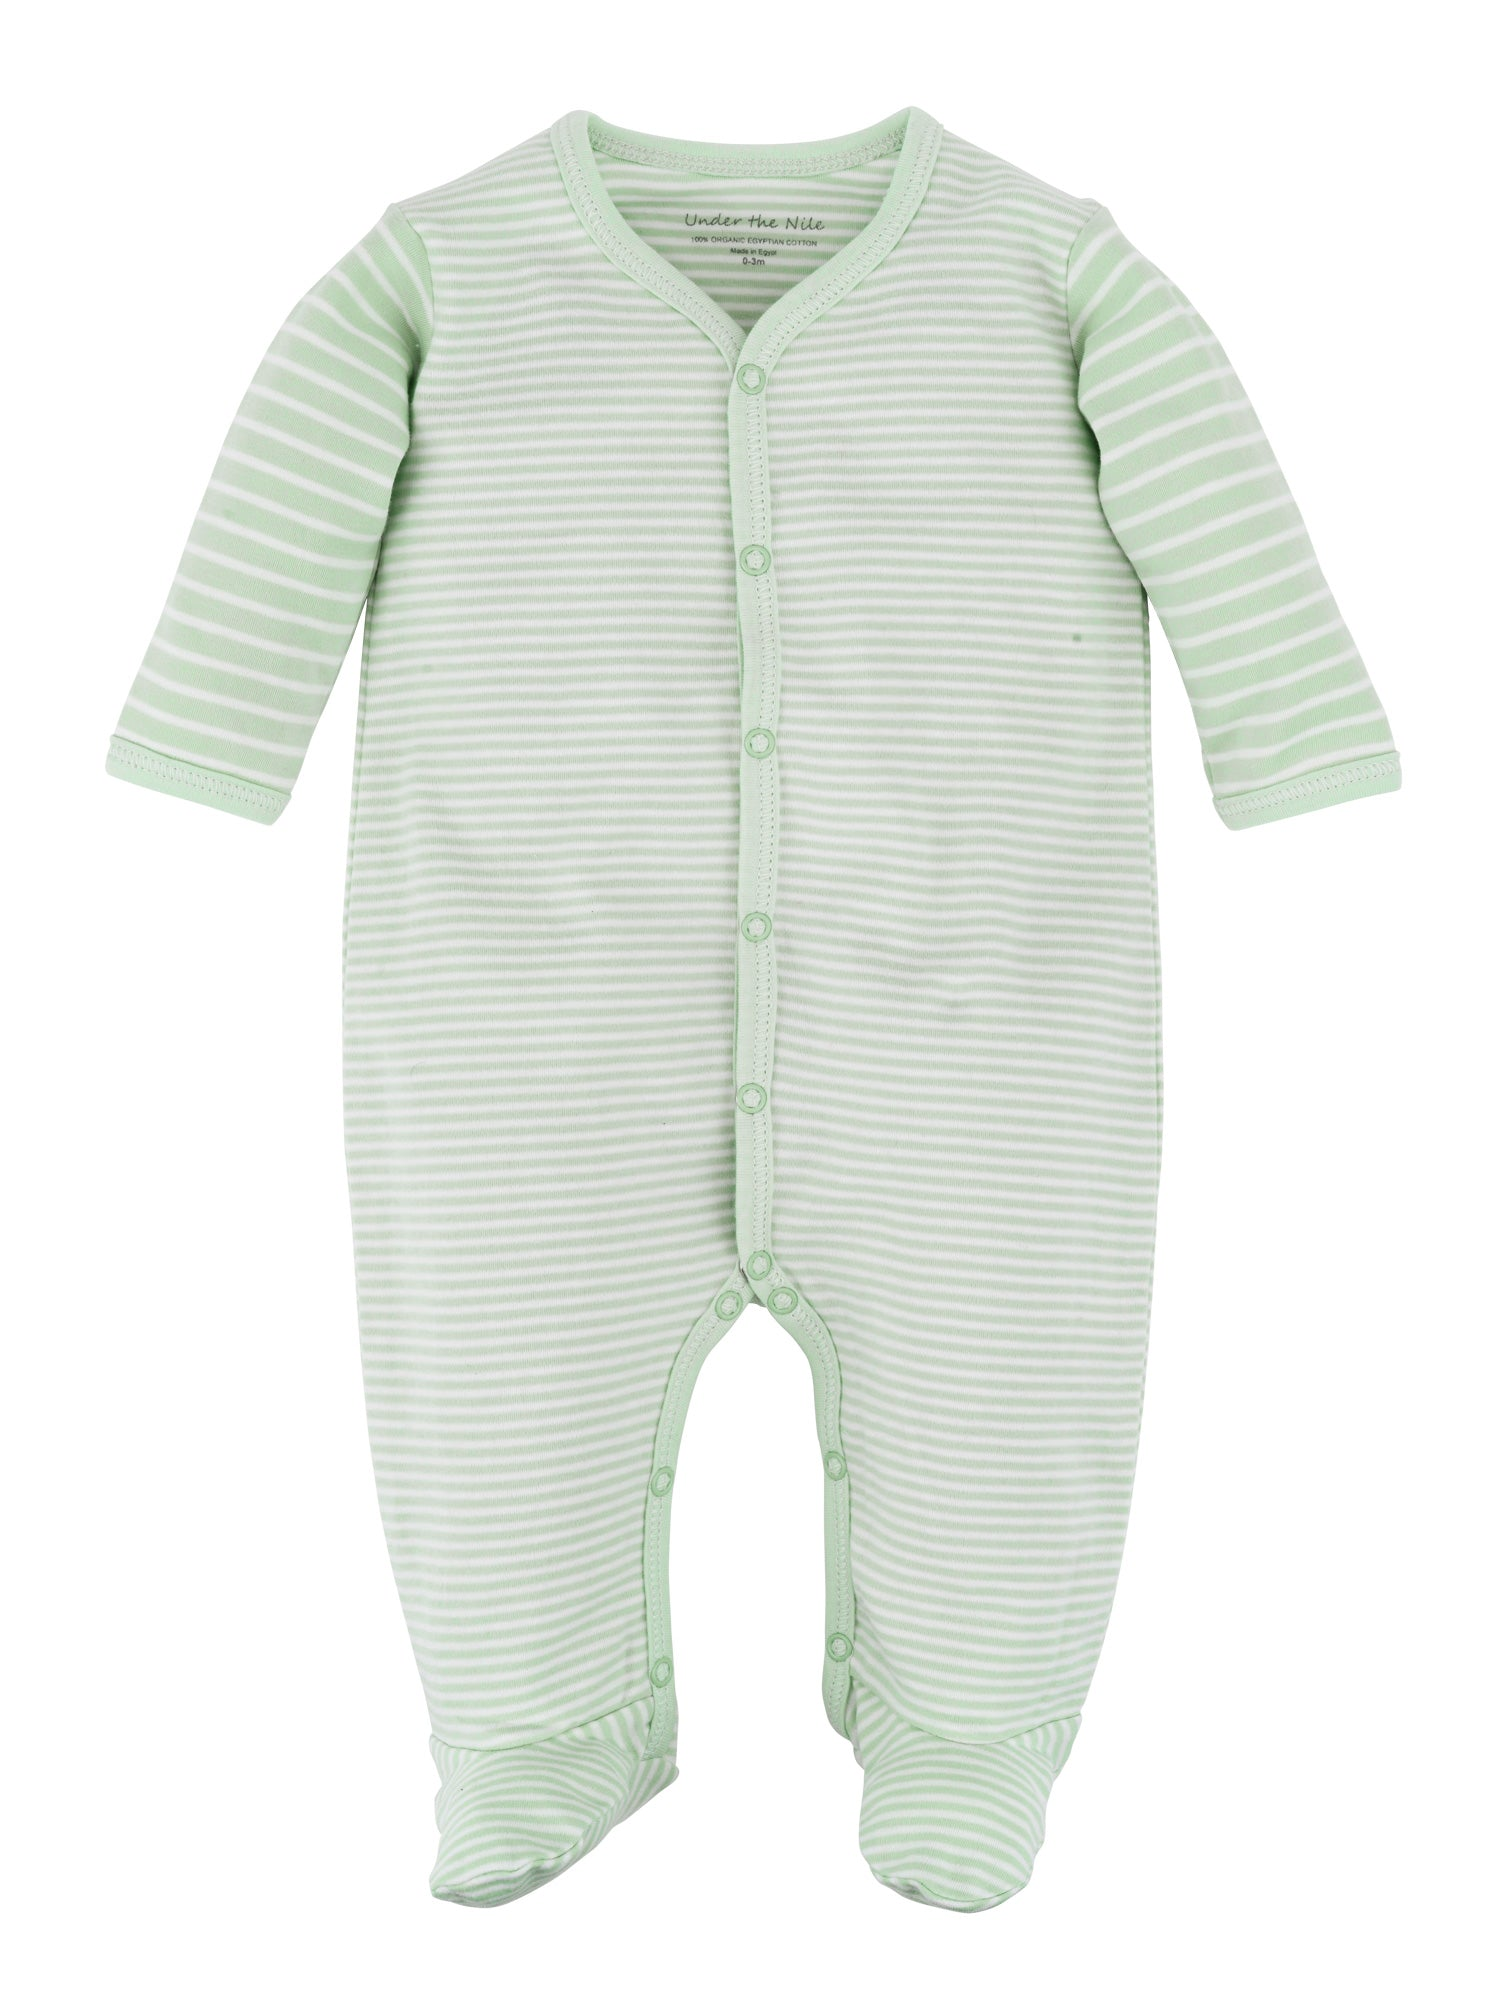 Snap Front Footie - Sage Stripe